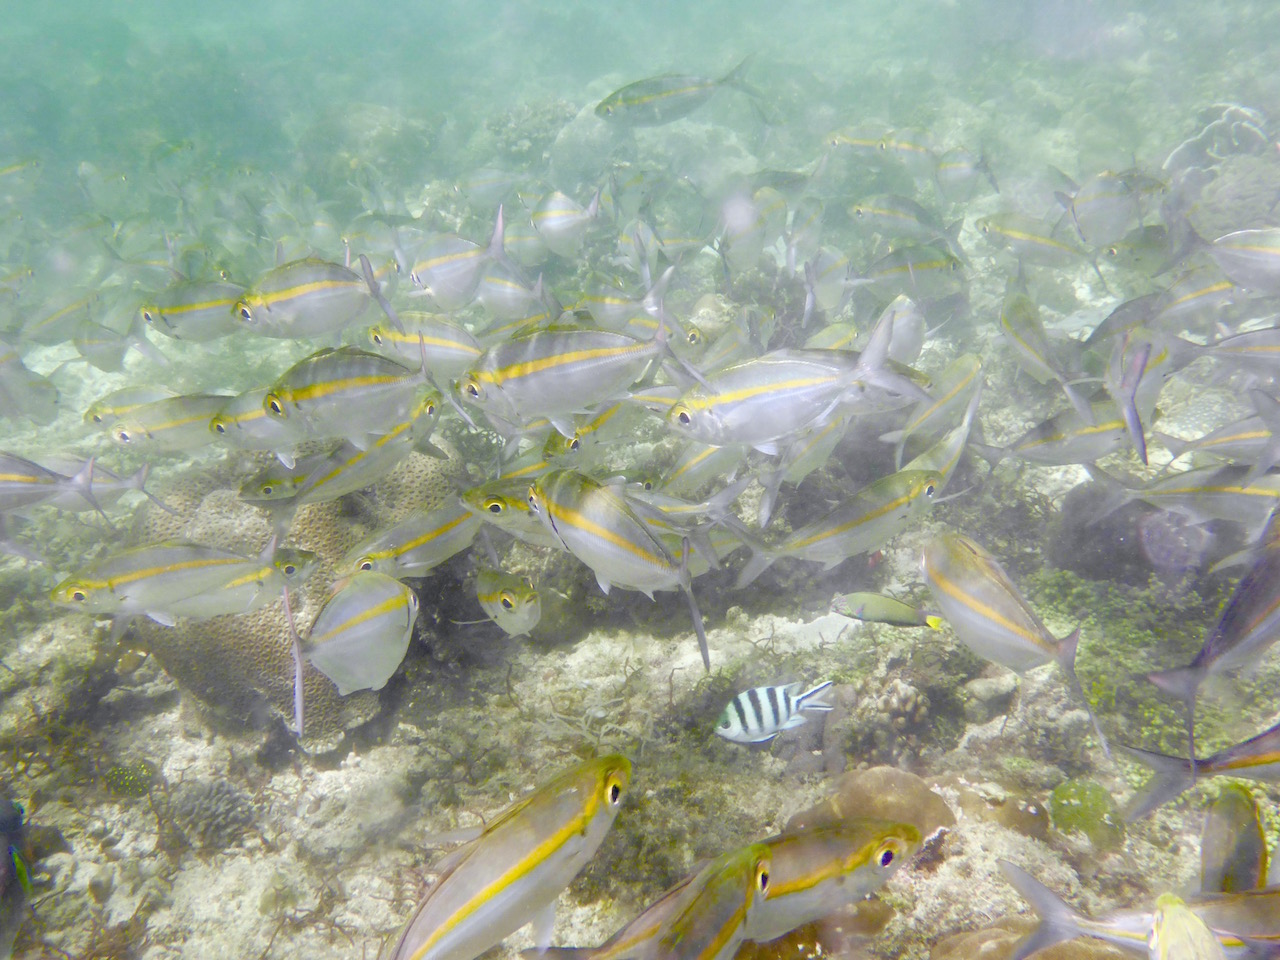 Convict tang amidst a school of yellow lined snappers. Photo: Vlademer Laloy